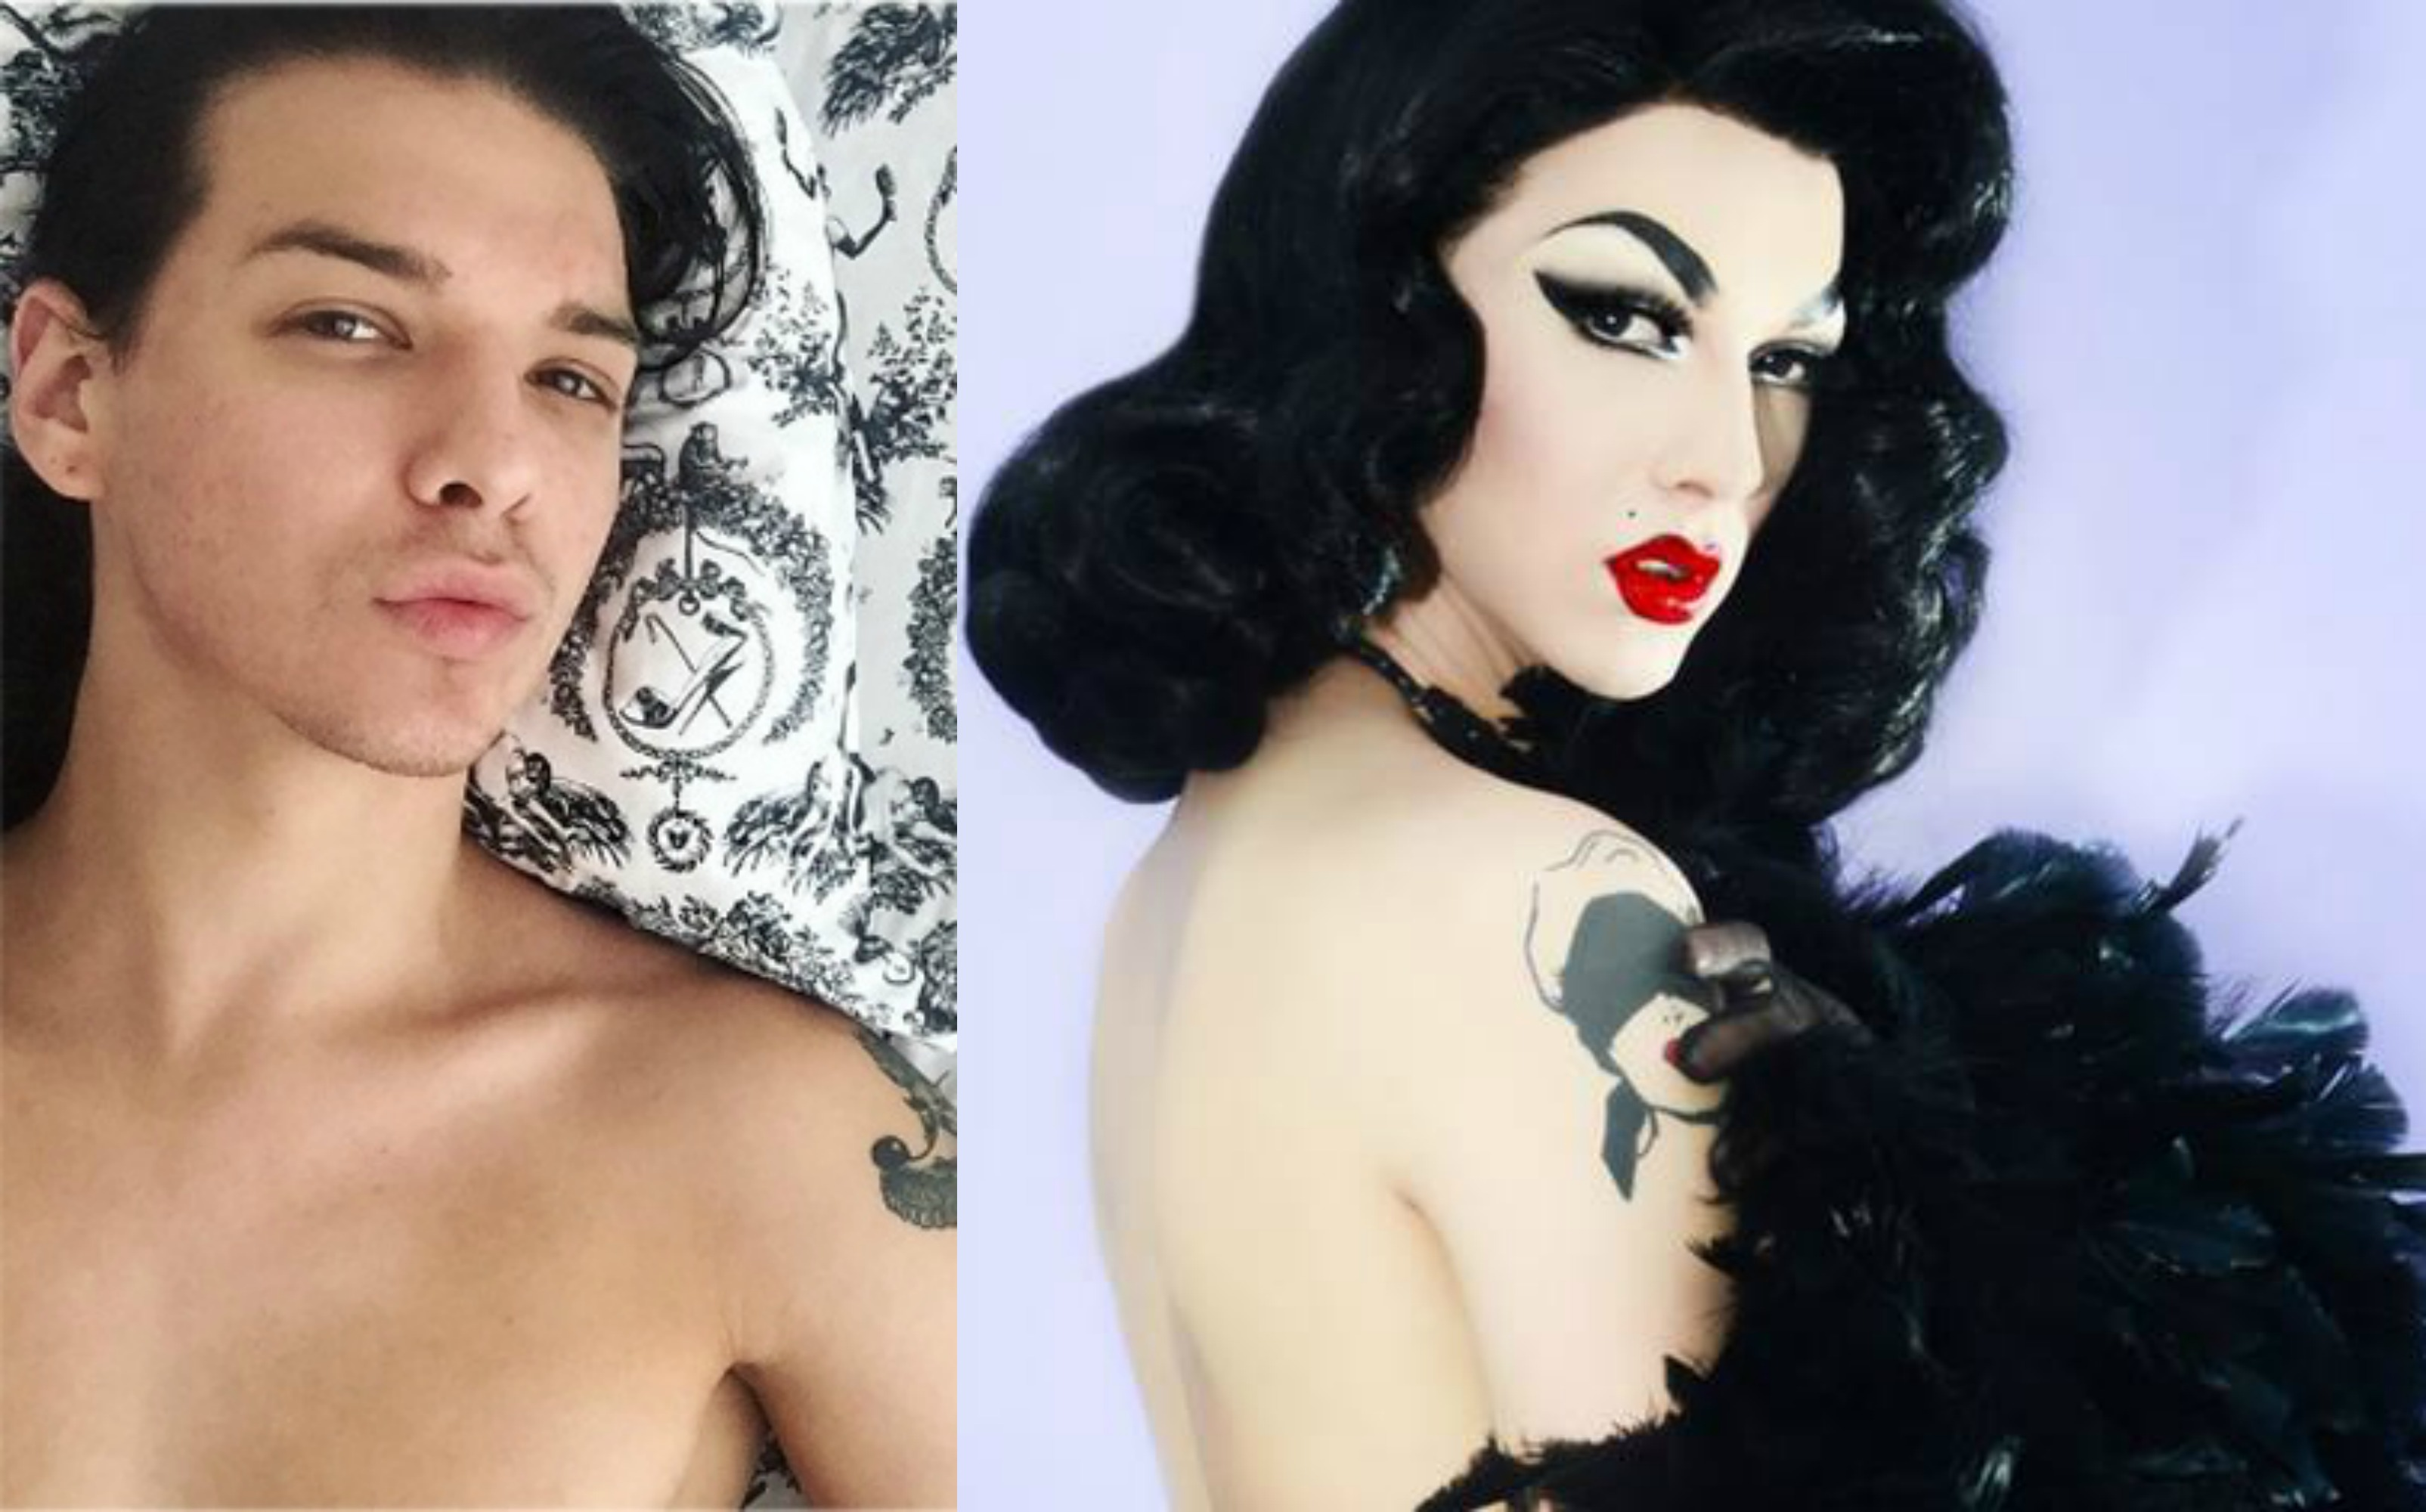 Category is: Sex Tape Realness -- Starring 'Ru Paul's Drag Race' Winner Violet Chachki [NSFW]